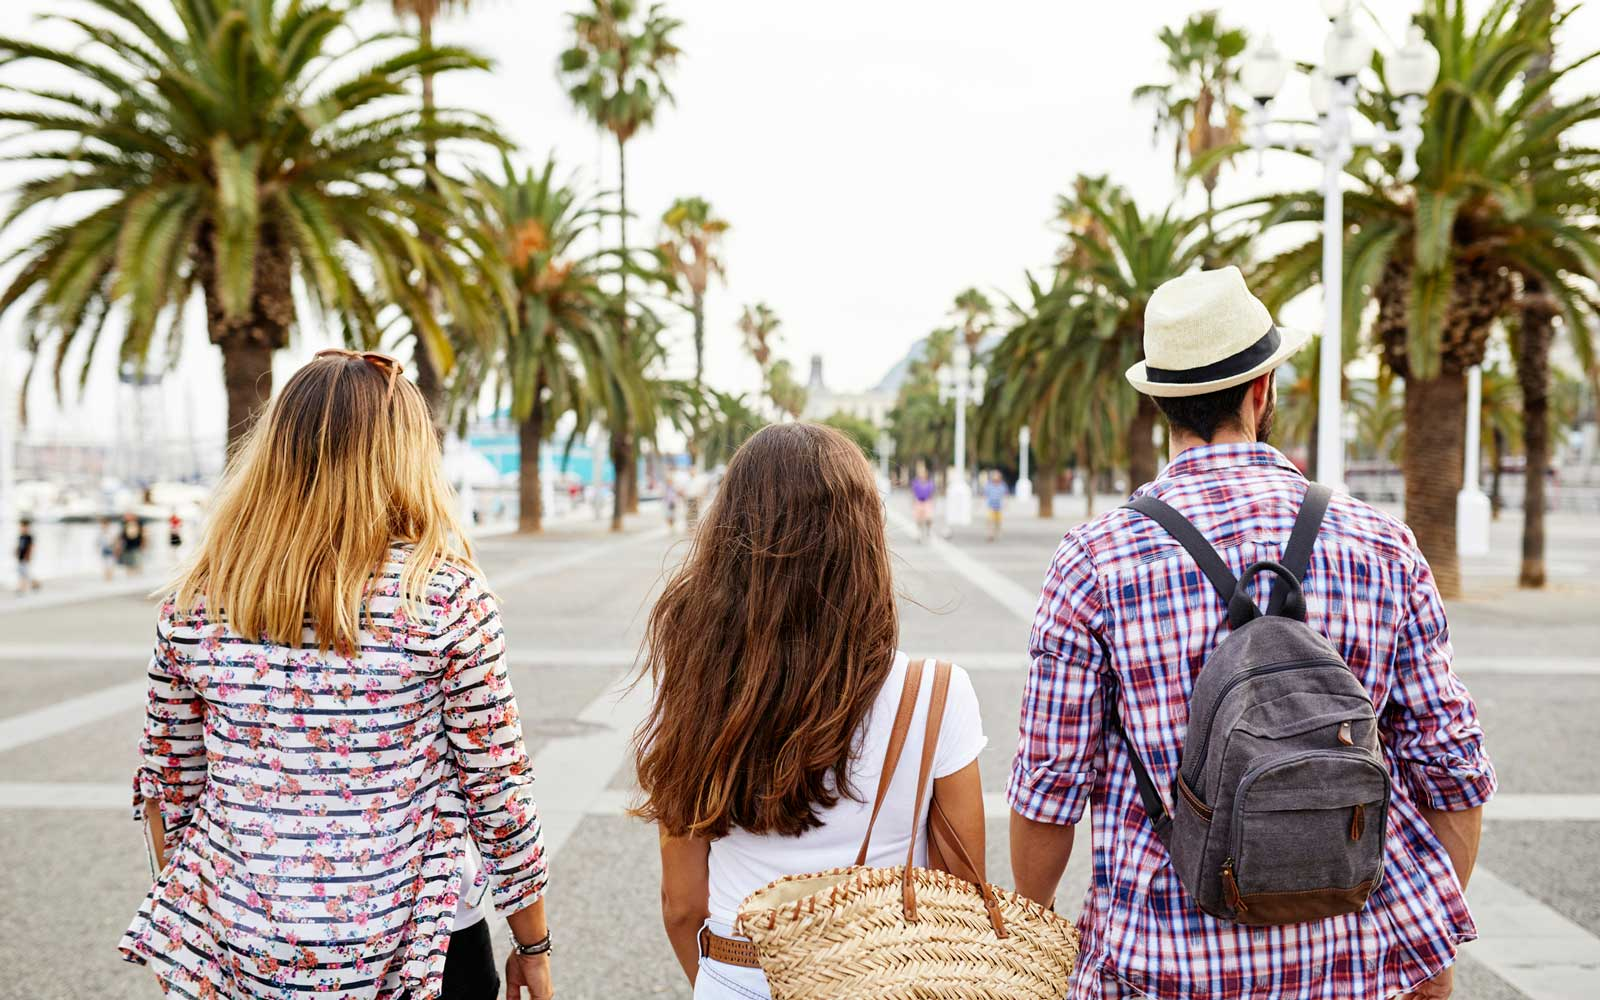 How to Go on Vacation With Your Friends If You Can't Really Afford It